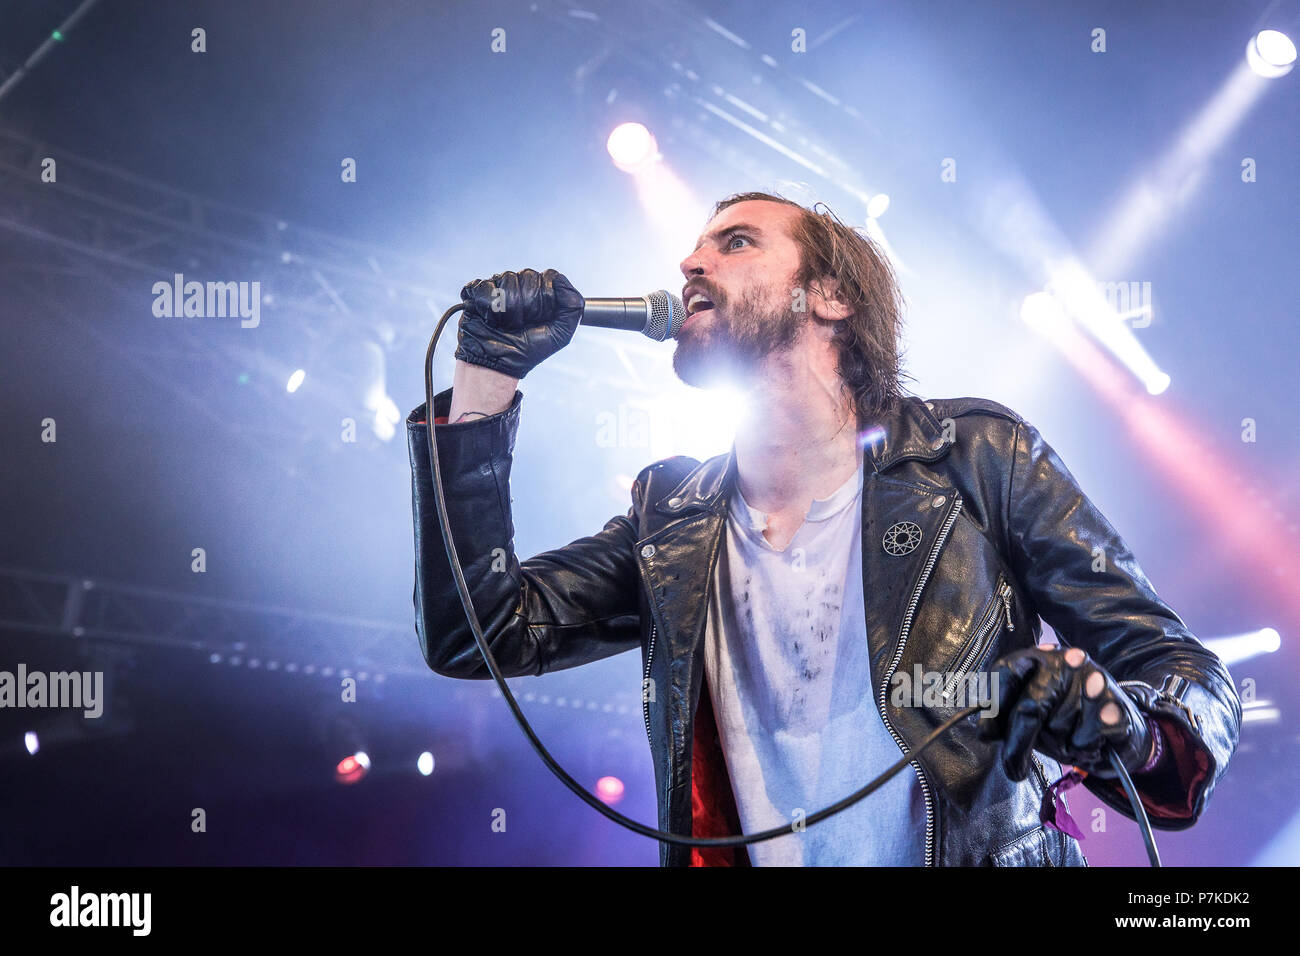 Roskilde, Denmark. 6th July 2018. The American extreme metal band Skeletonwitch performs a live concert at during the Danish music festival Roskilde Festival 2018. Here vocalist Adam Clemans is seen live on stage. (Photo credit: Gonzales Photo - Peter Troest). Credit: Gonzales Photo/Alamy Live News - Stock Image